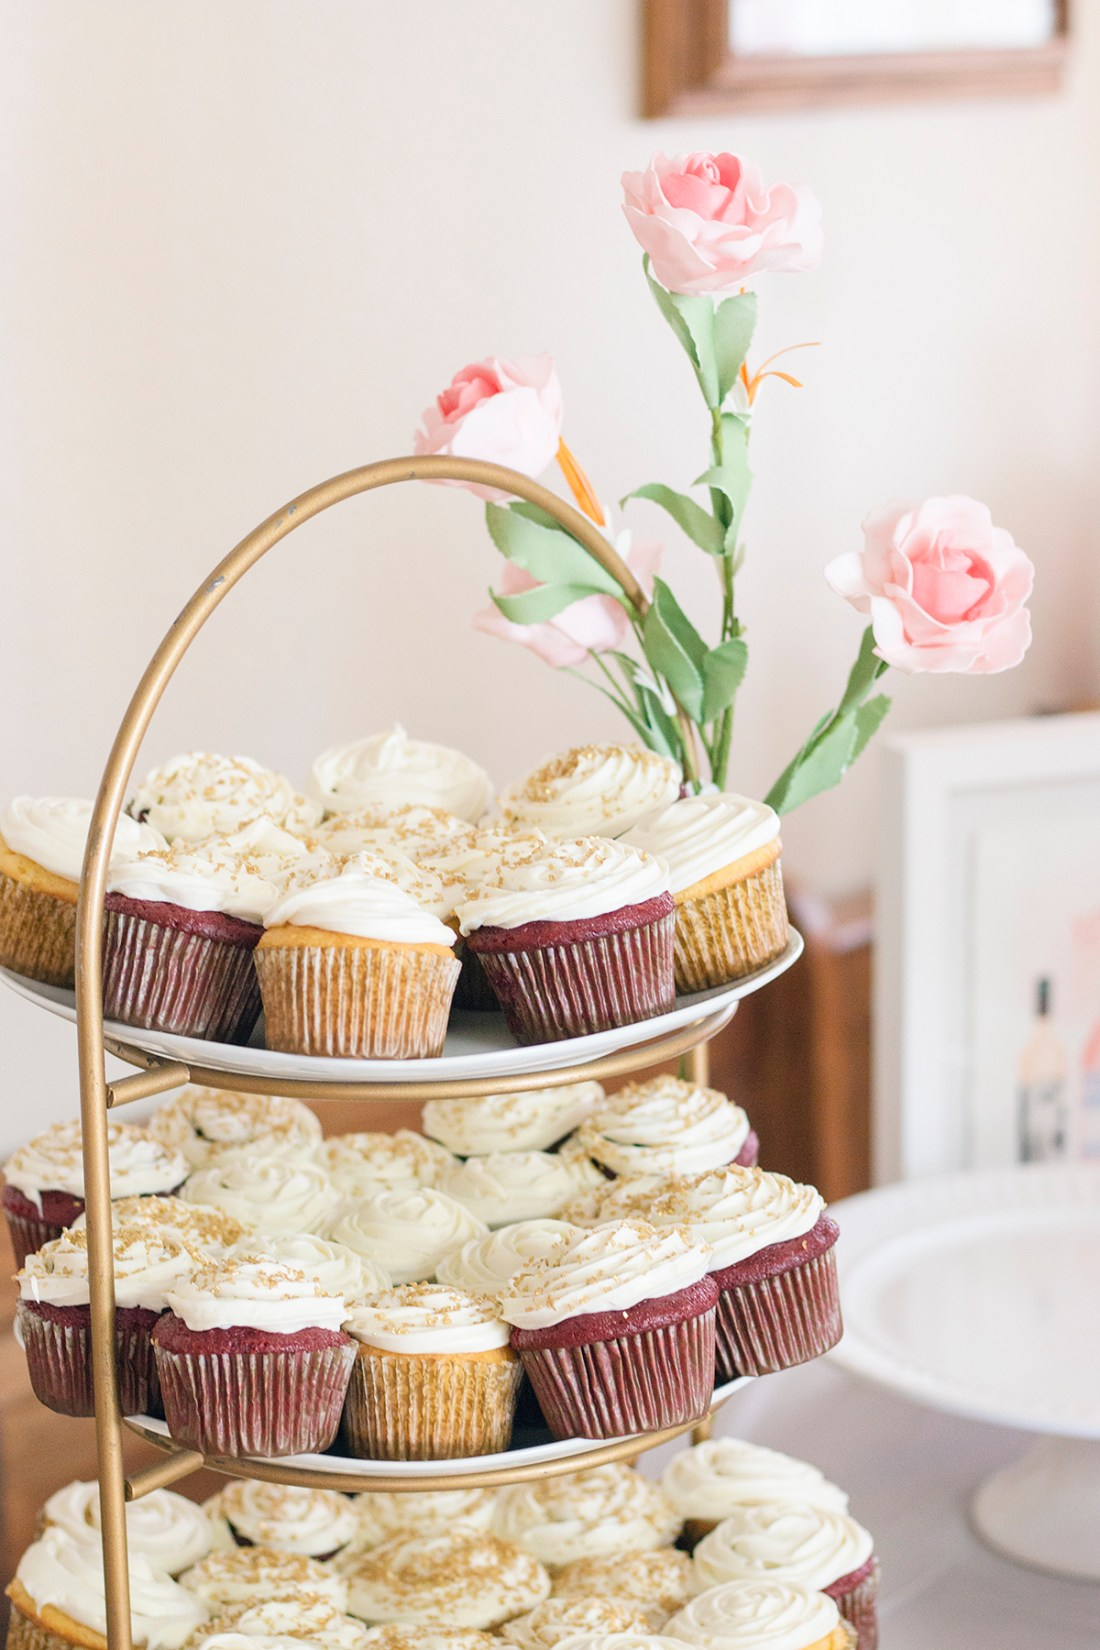 Rosé and Bubbly Bridal Shower- Champagne Vanilla and Red Velvet Cupcakes | A Good Hue